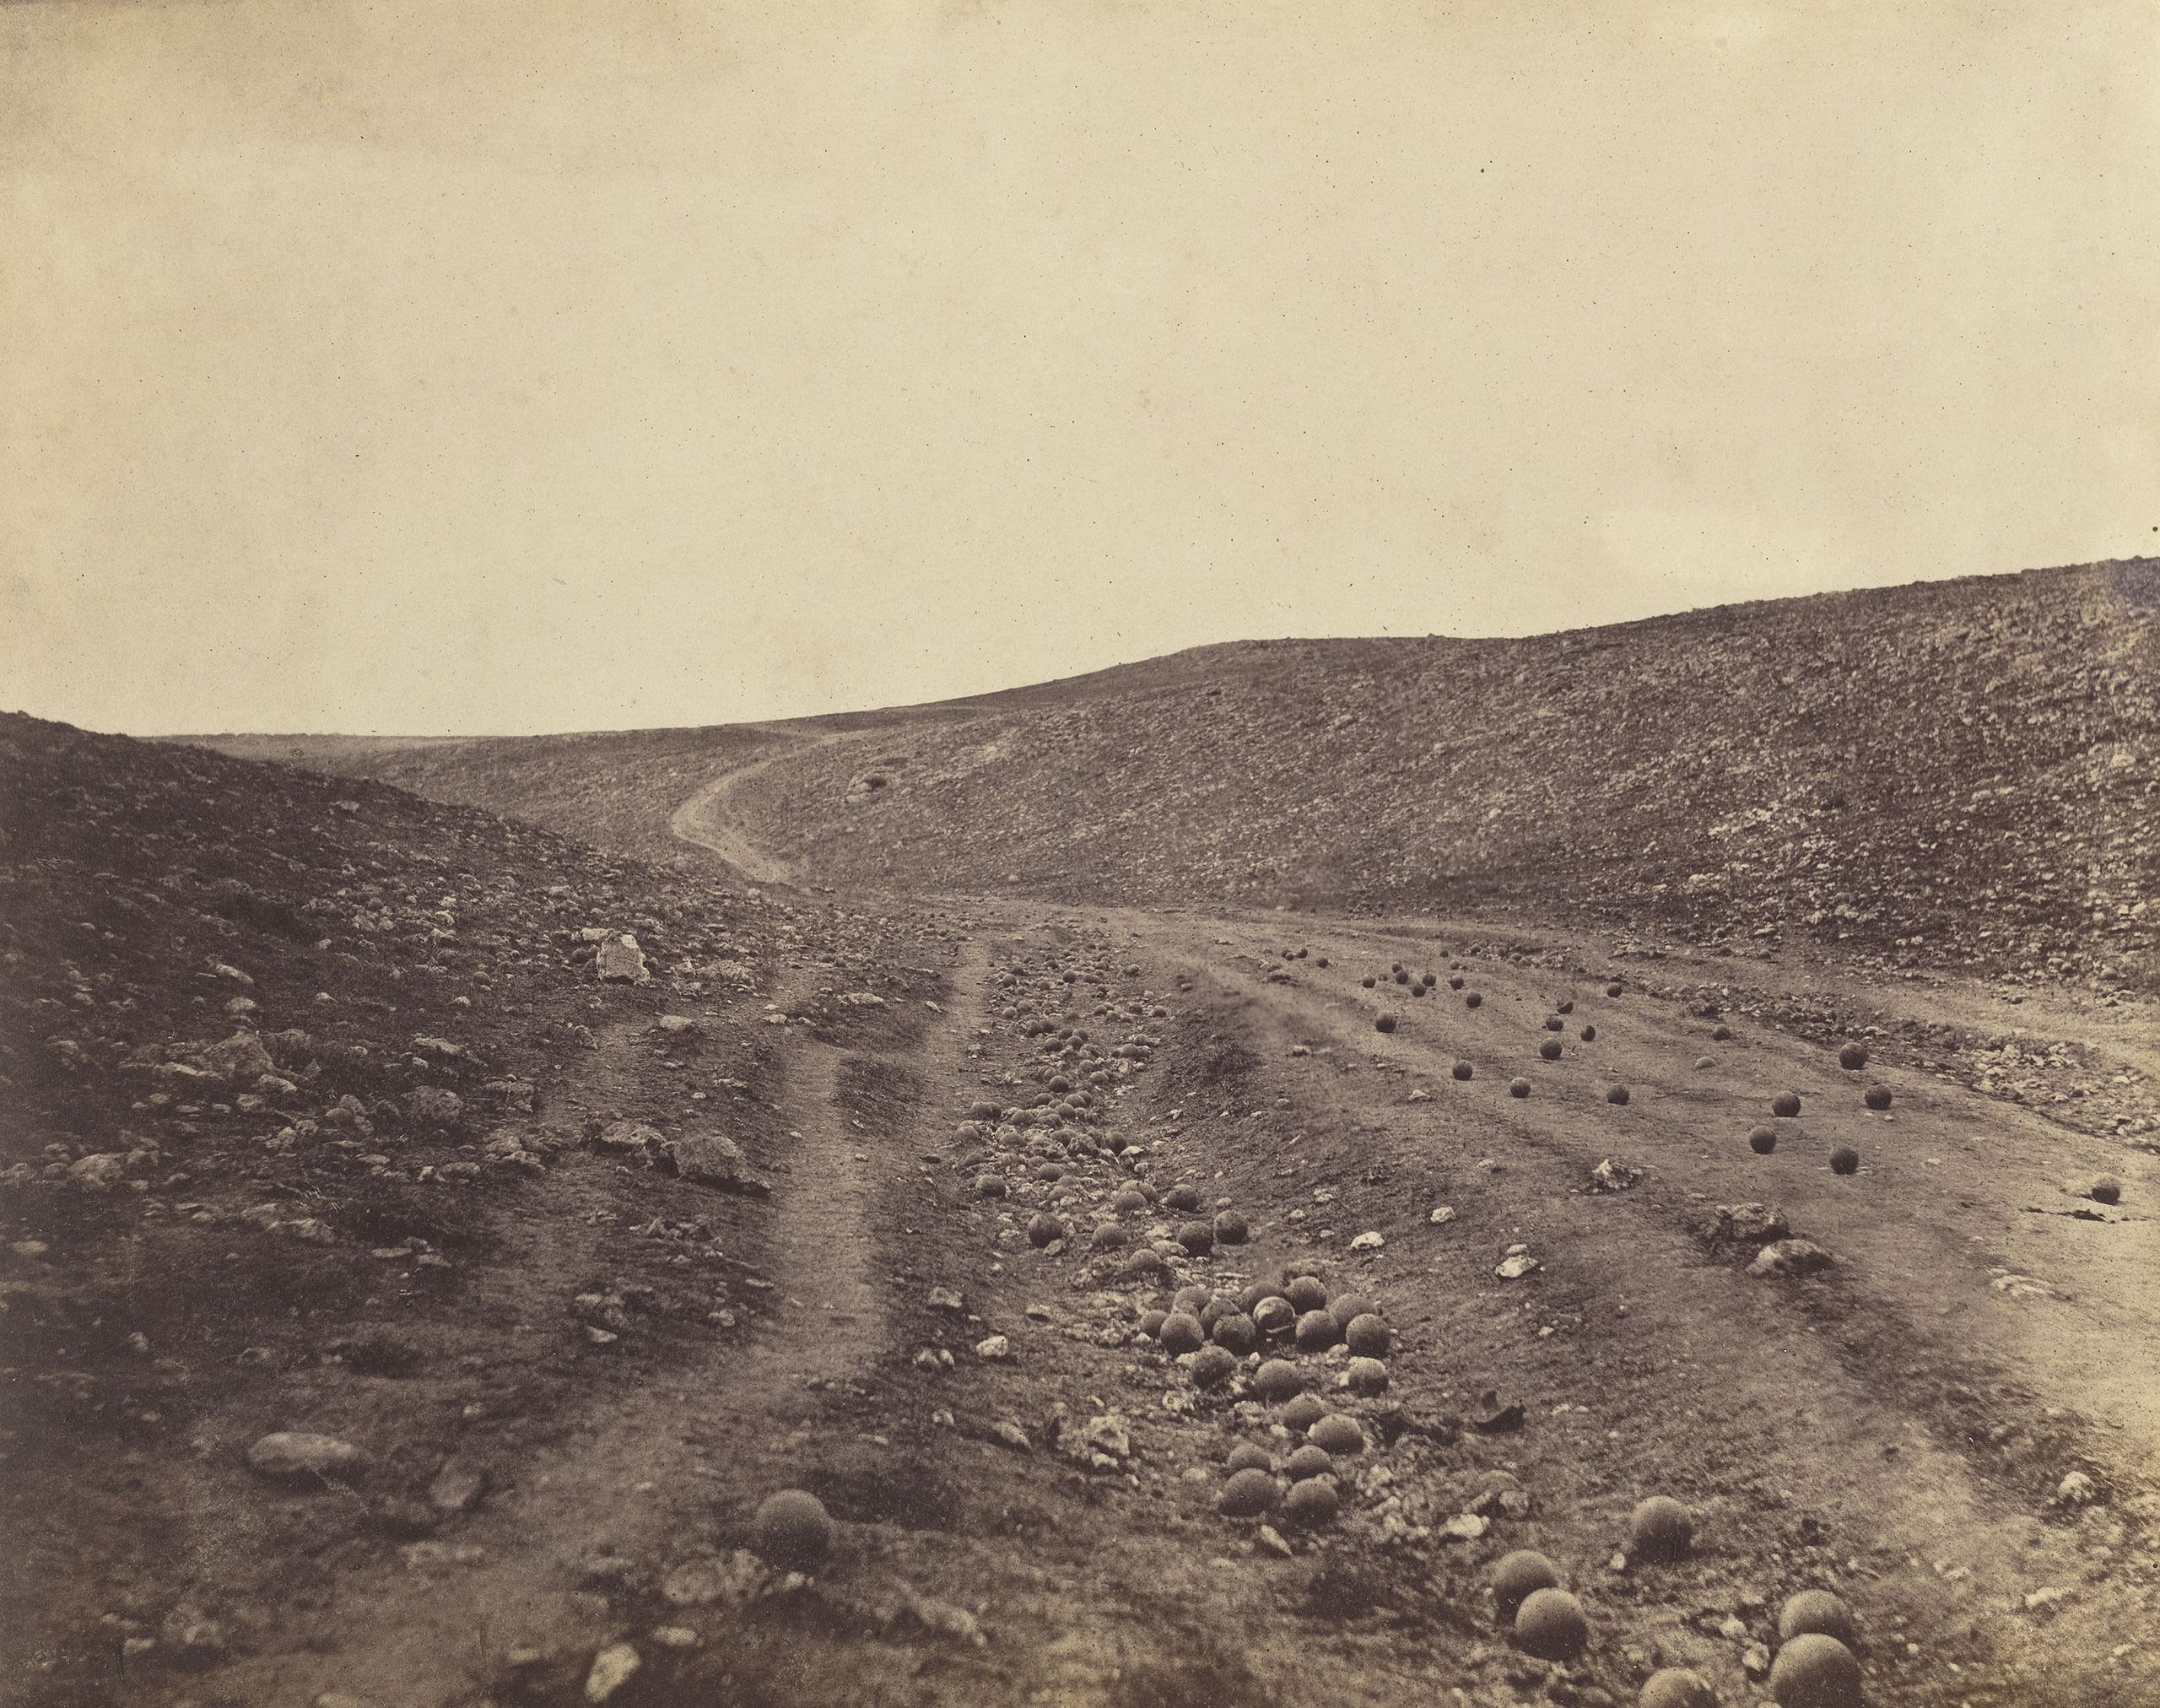 The Valley of the Shadow of Death by Roger Fenton, 1855.